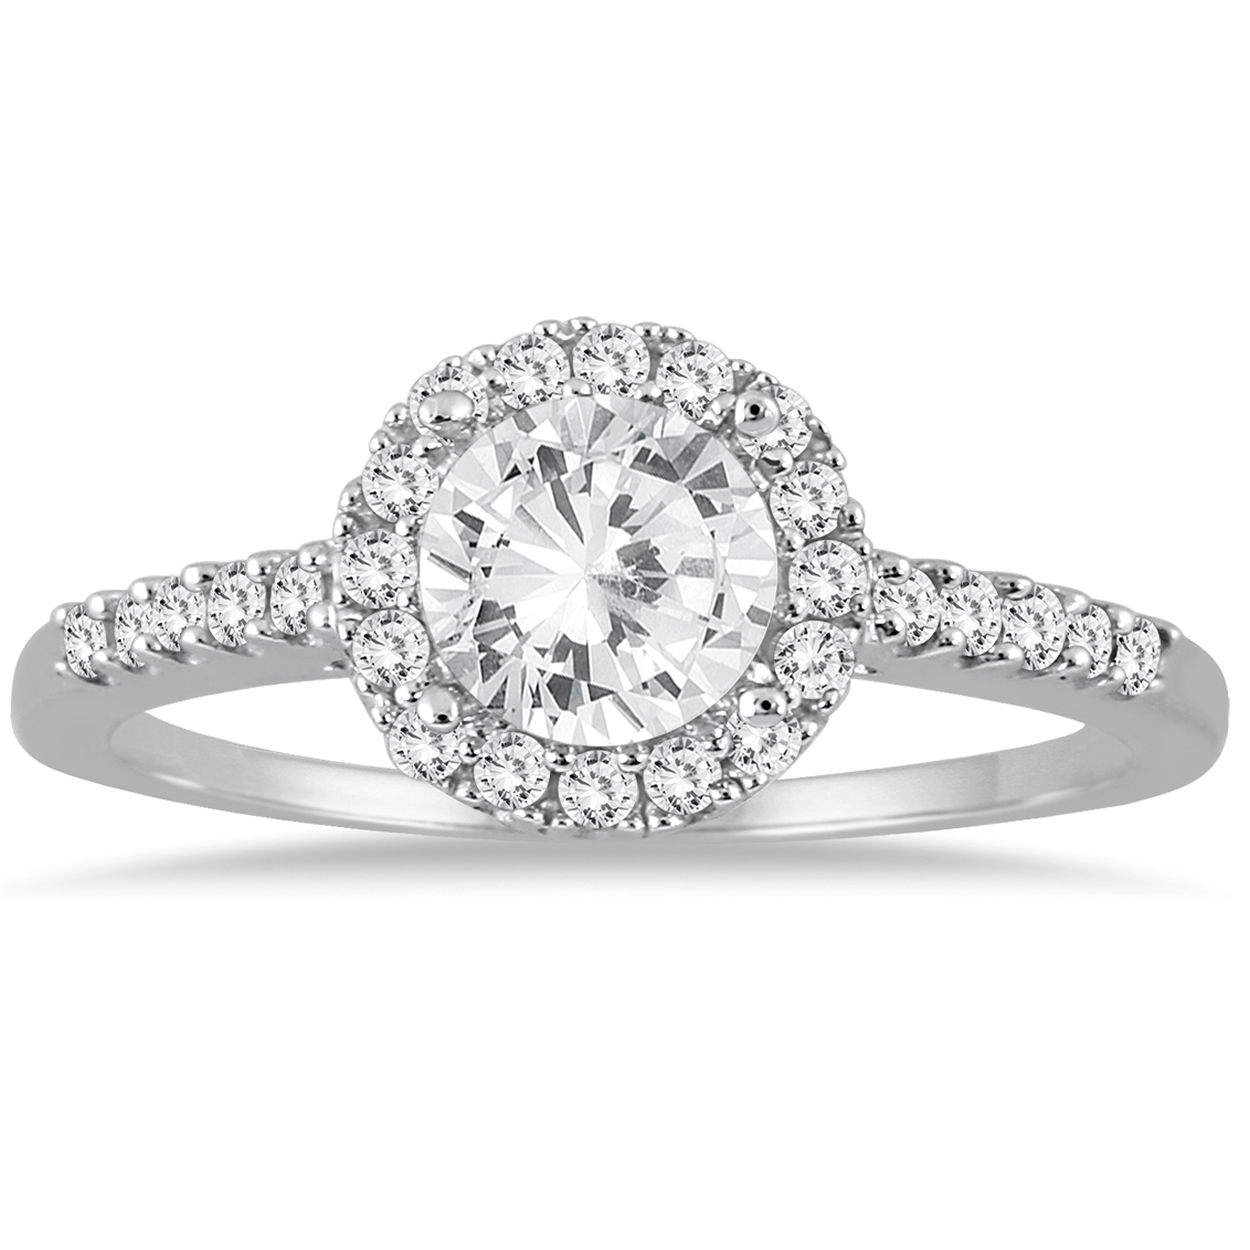 1 Carat T.W Diamond Halo Engagement Ring in 10K White Gold